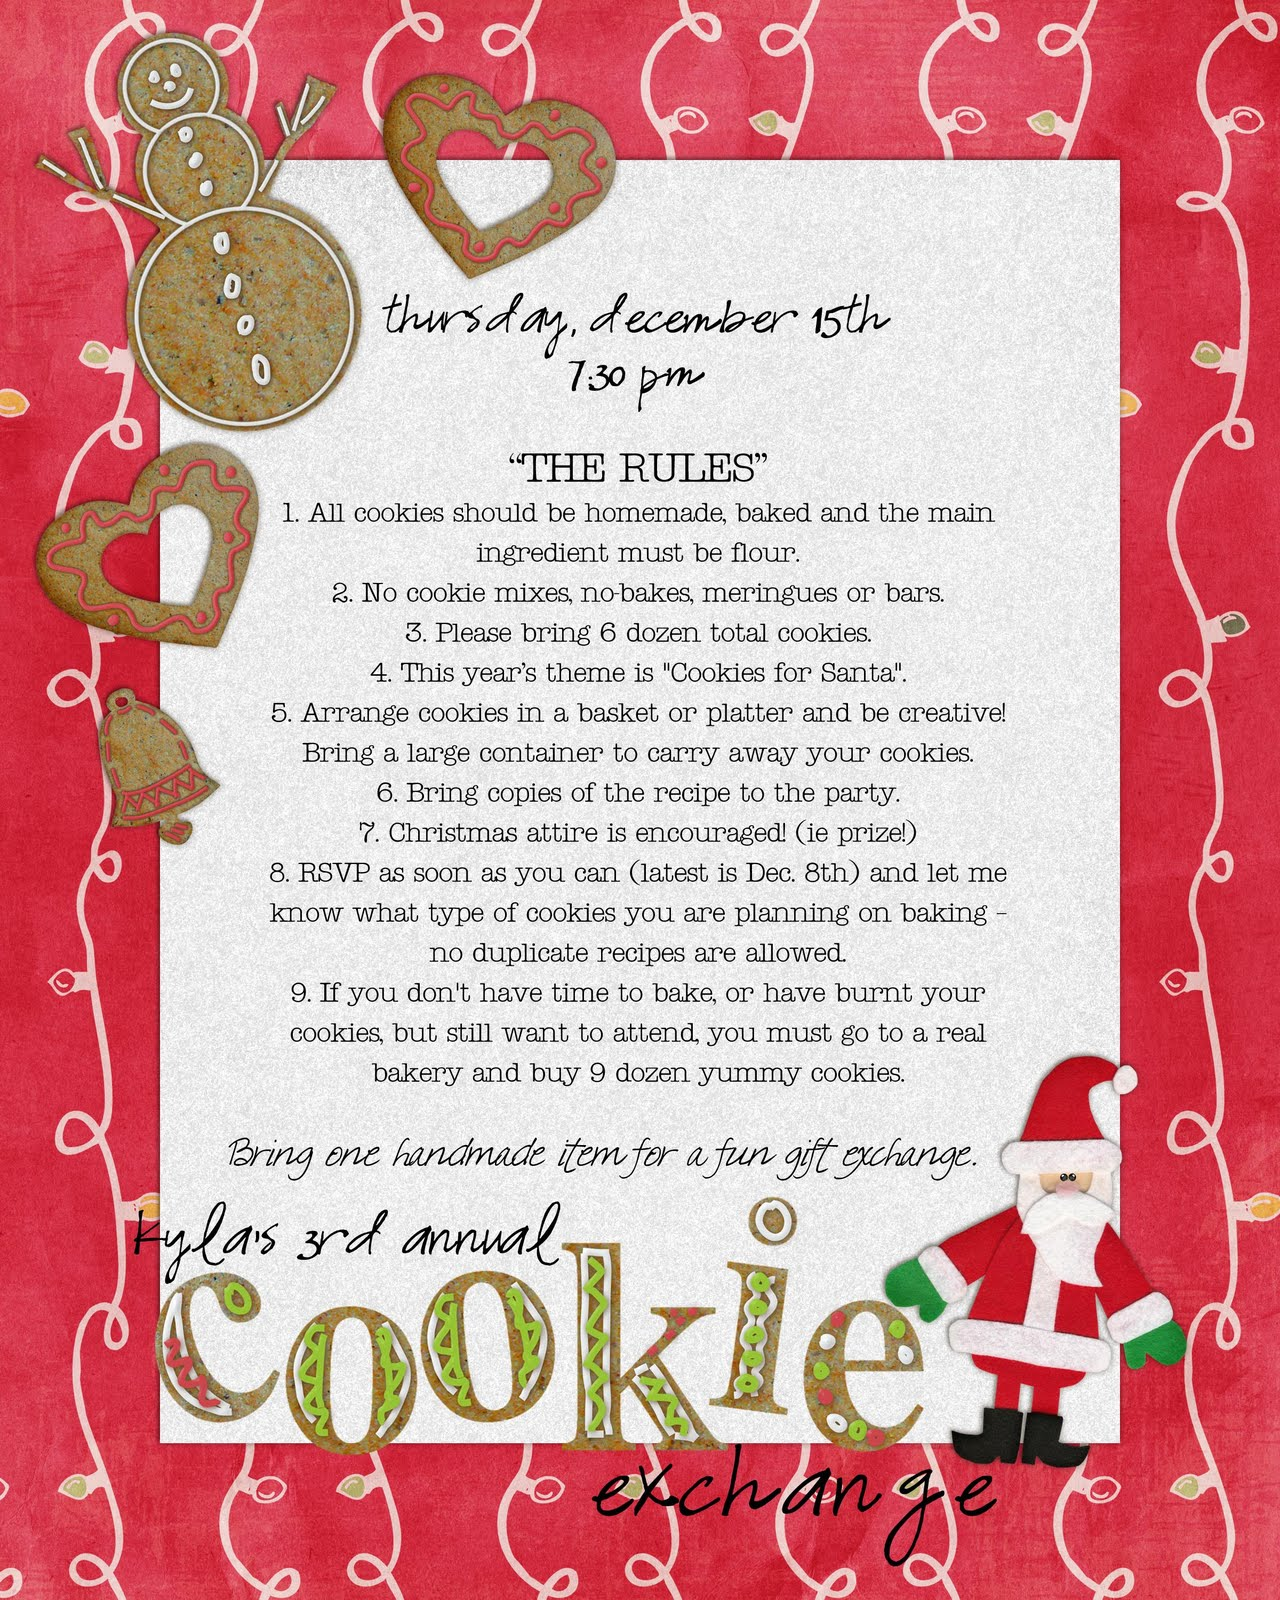 Feb 19, · The best Christmas cookie exchange party favors are edible gifts. For an oh-so-sweet holiday hostess food gift, layer the ingredients of your favorite Christmas cookie in a quart jar and fasten the lid, using a festive ribbon for decoration. Include the recipe and simple baking instructions on a sfathiquah.ml: Better Homes & Gardens.